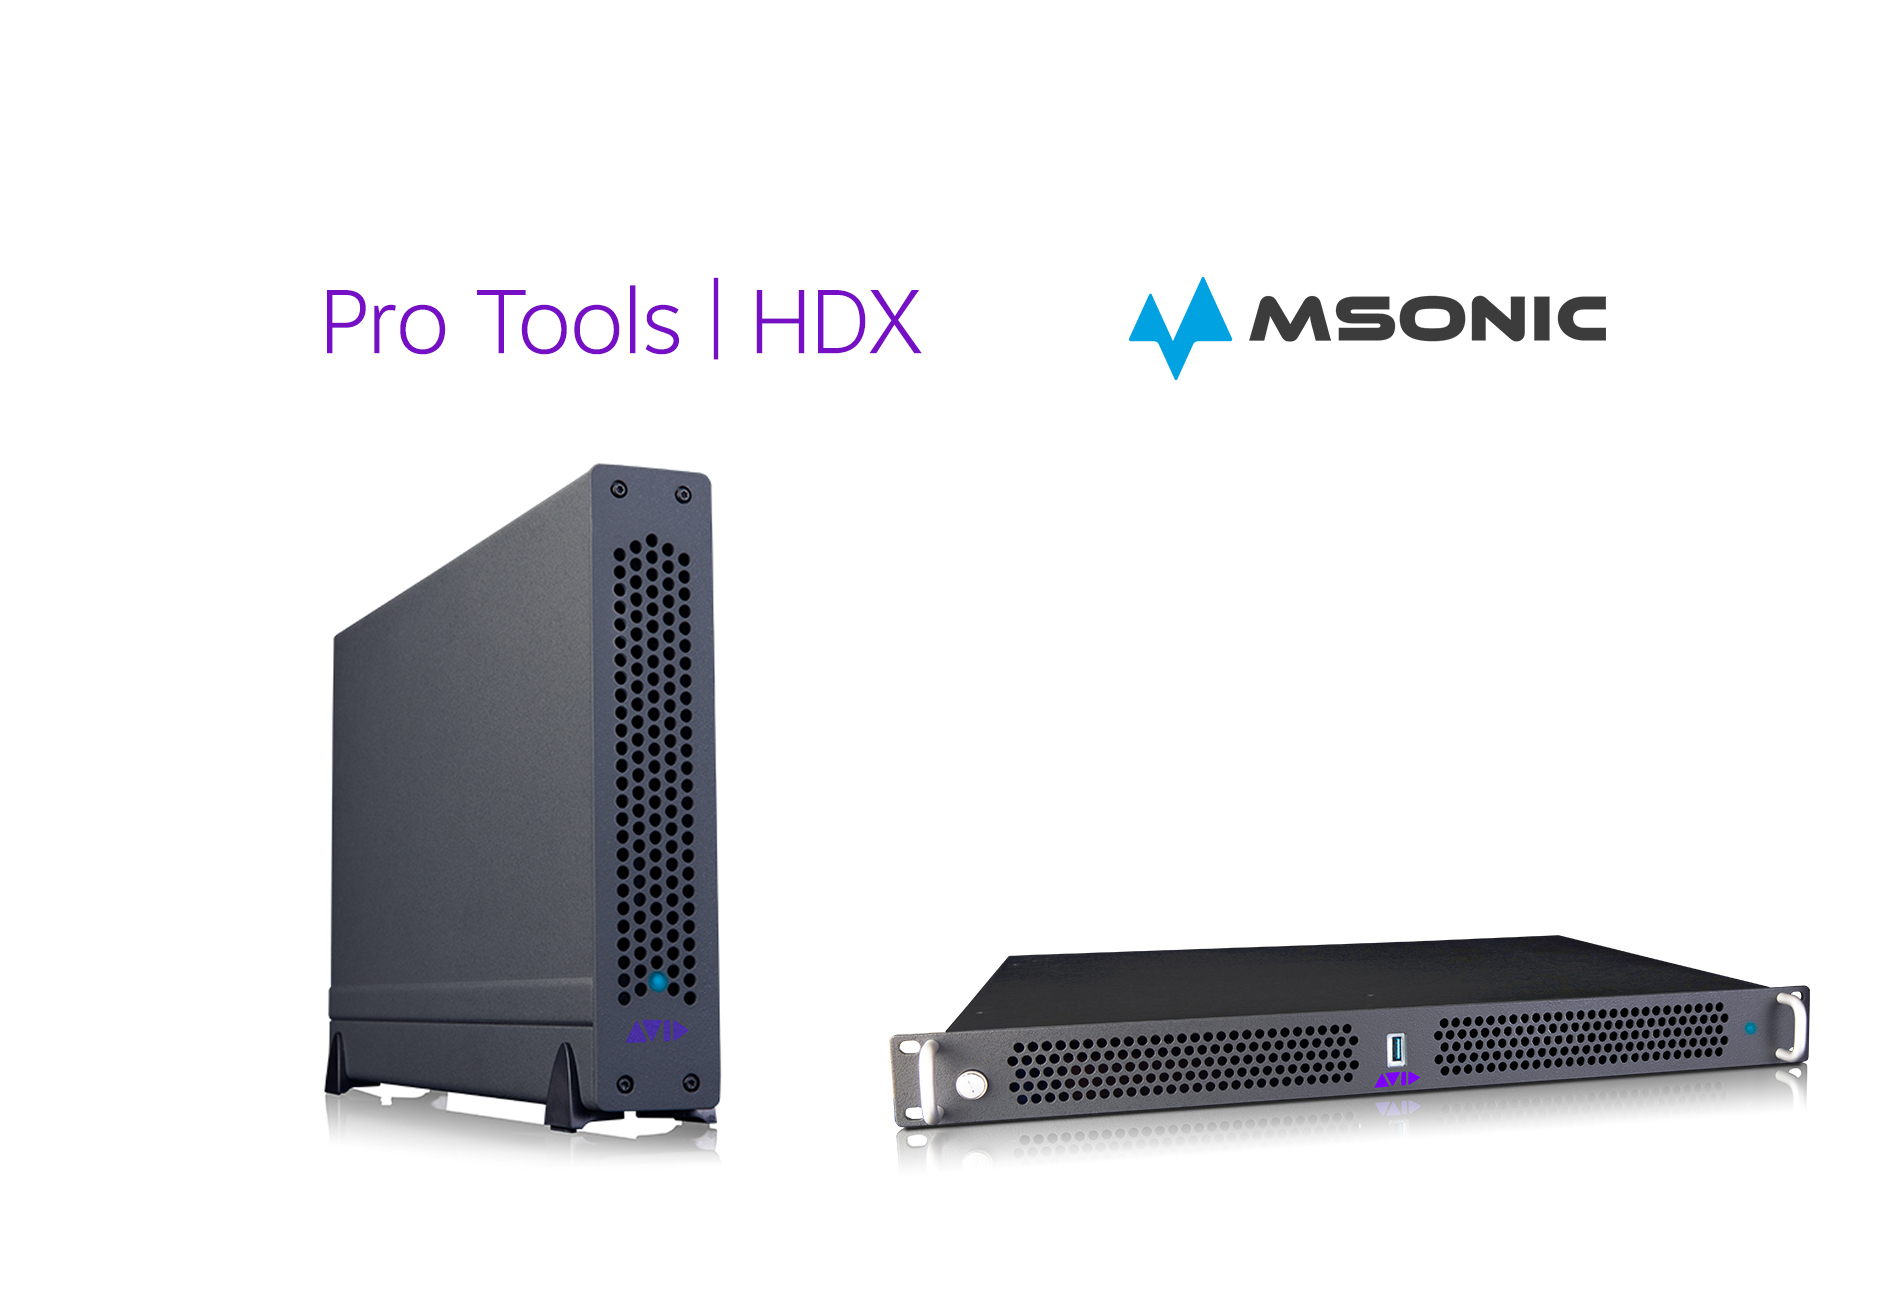 pro-tools-HDX-thunderbolt3-chassis